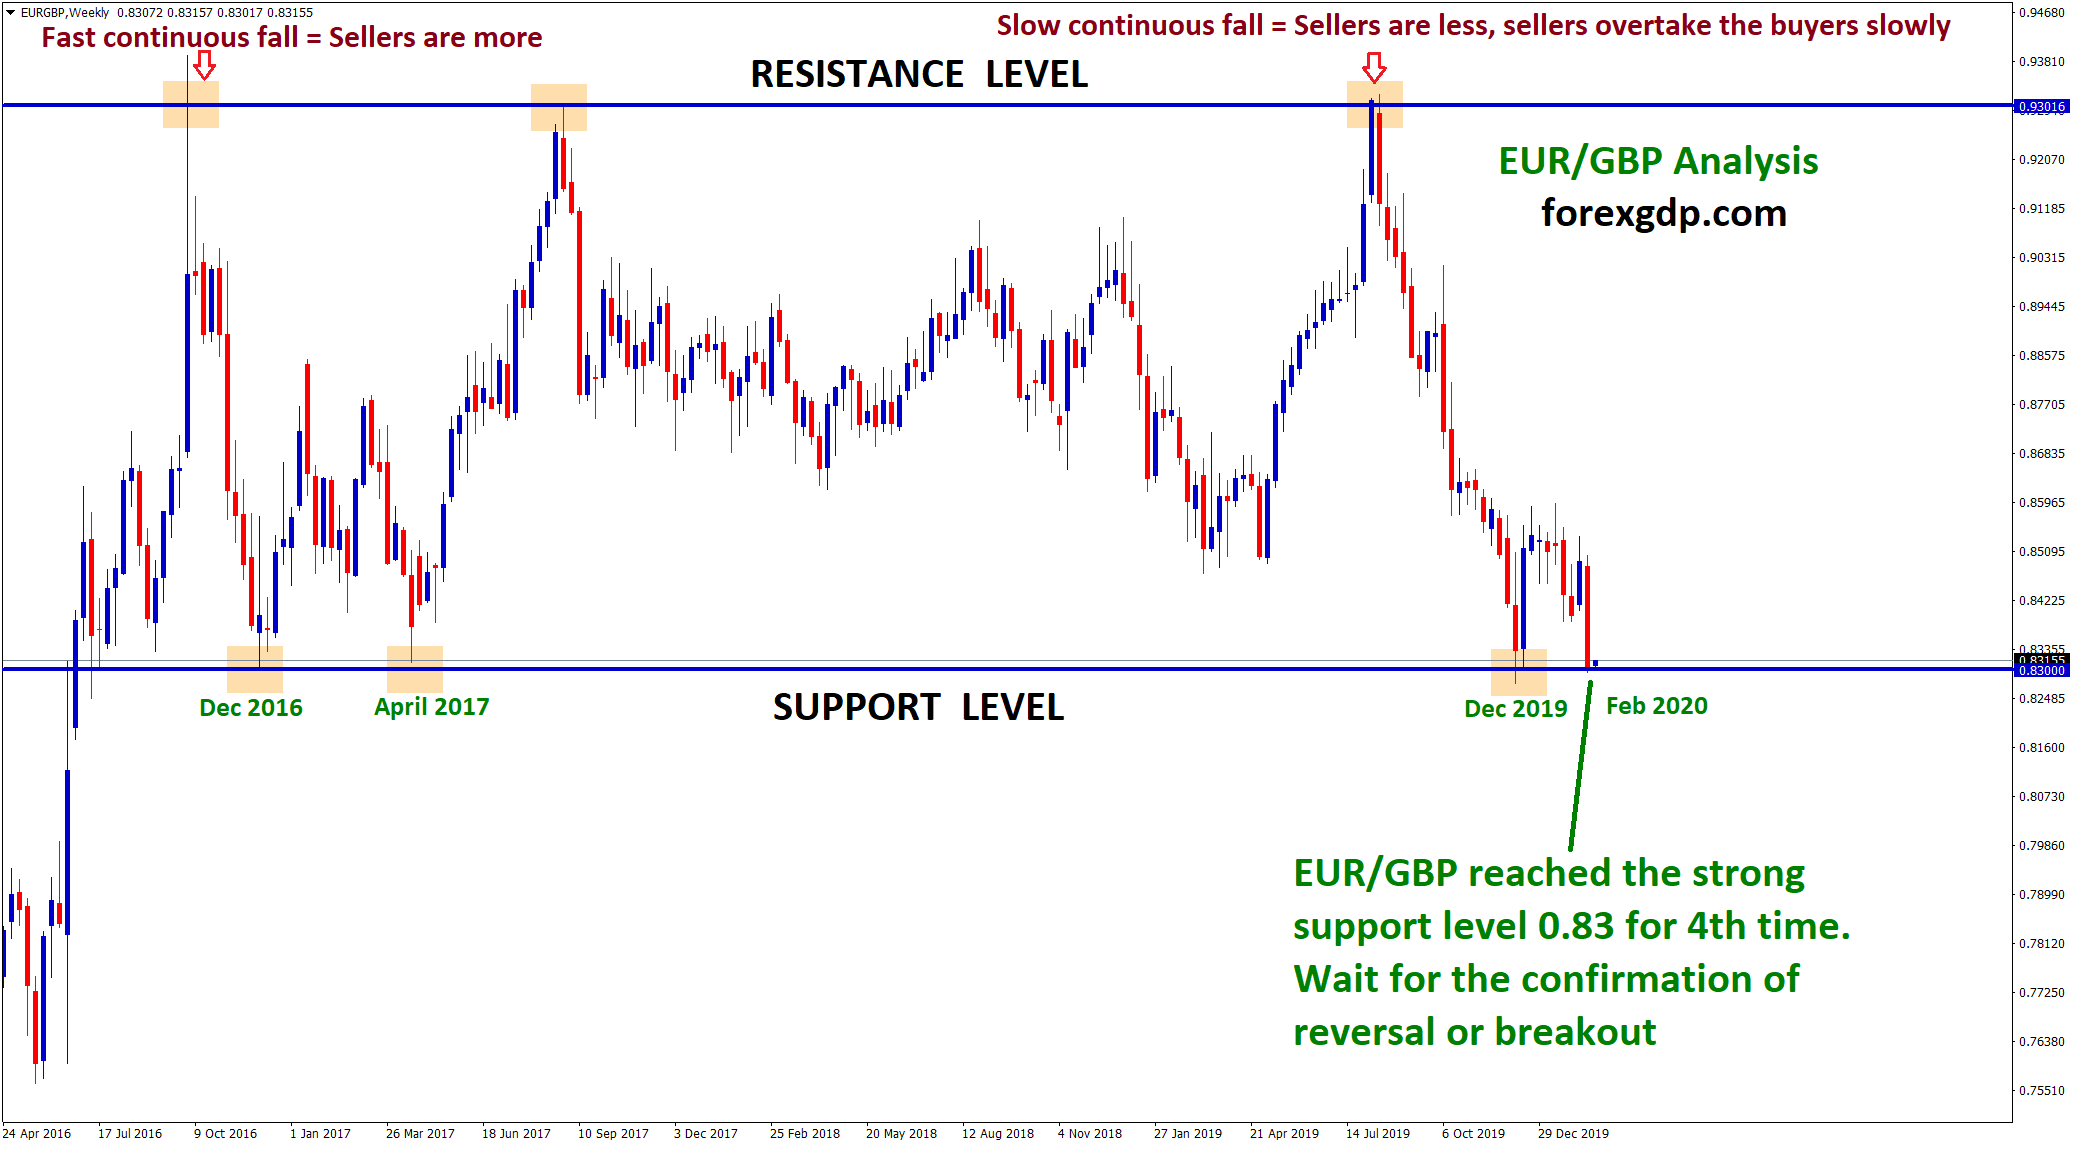 slow and fast fall of market from resistance level